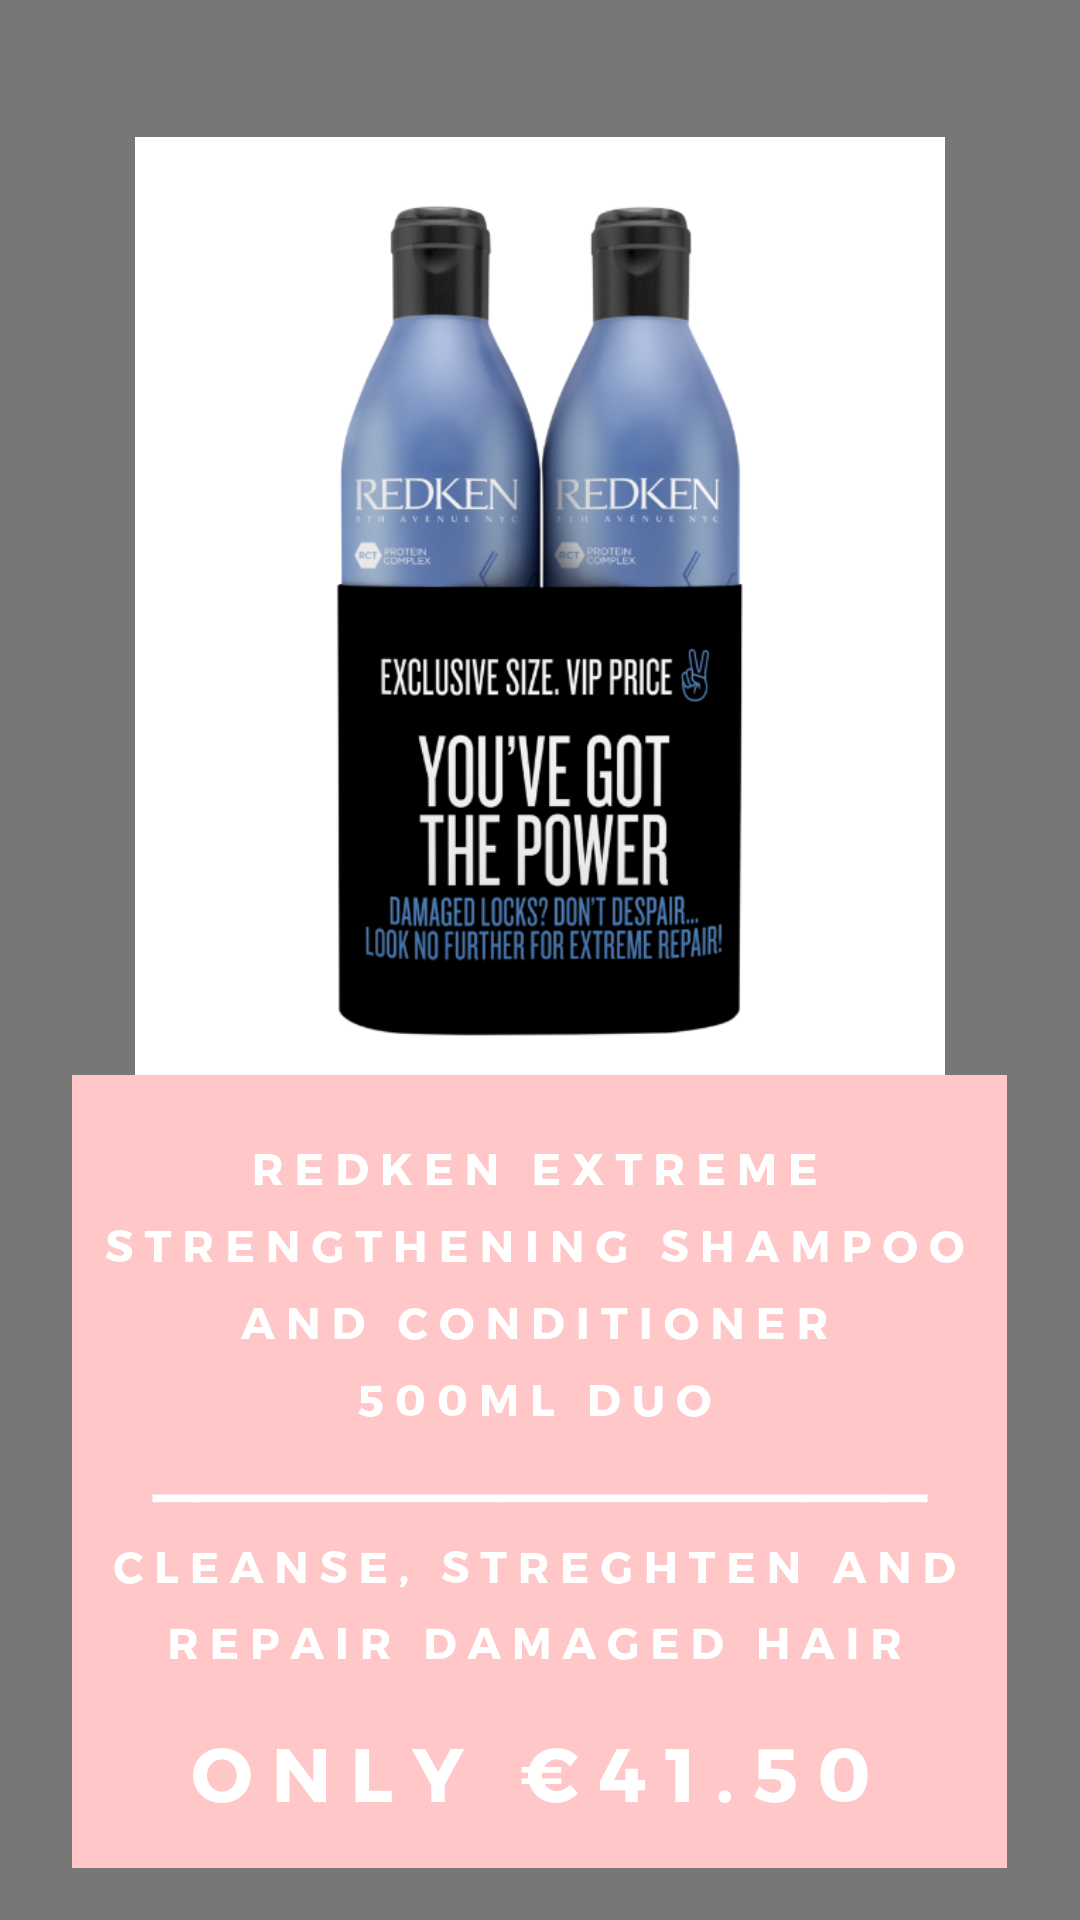 SHOP THE REDKEN EXTREME 500ml DUO HERE!